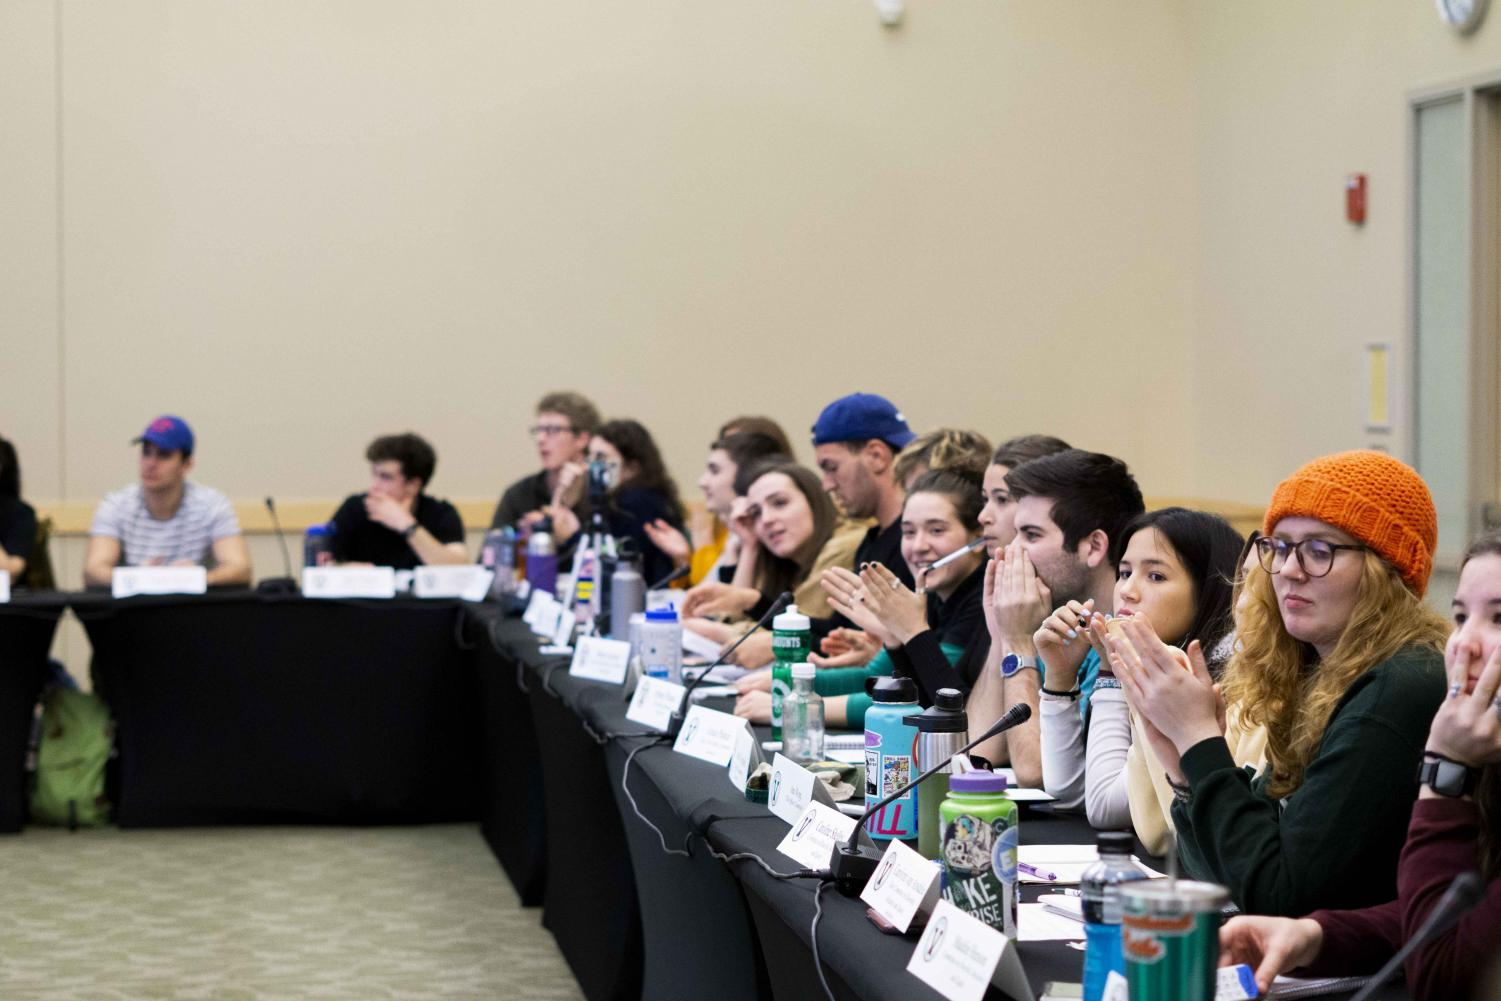 SGA senators sit during a meeting, Nov. 5. A resolution to not increase the student activity fee passed at the meeting.